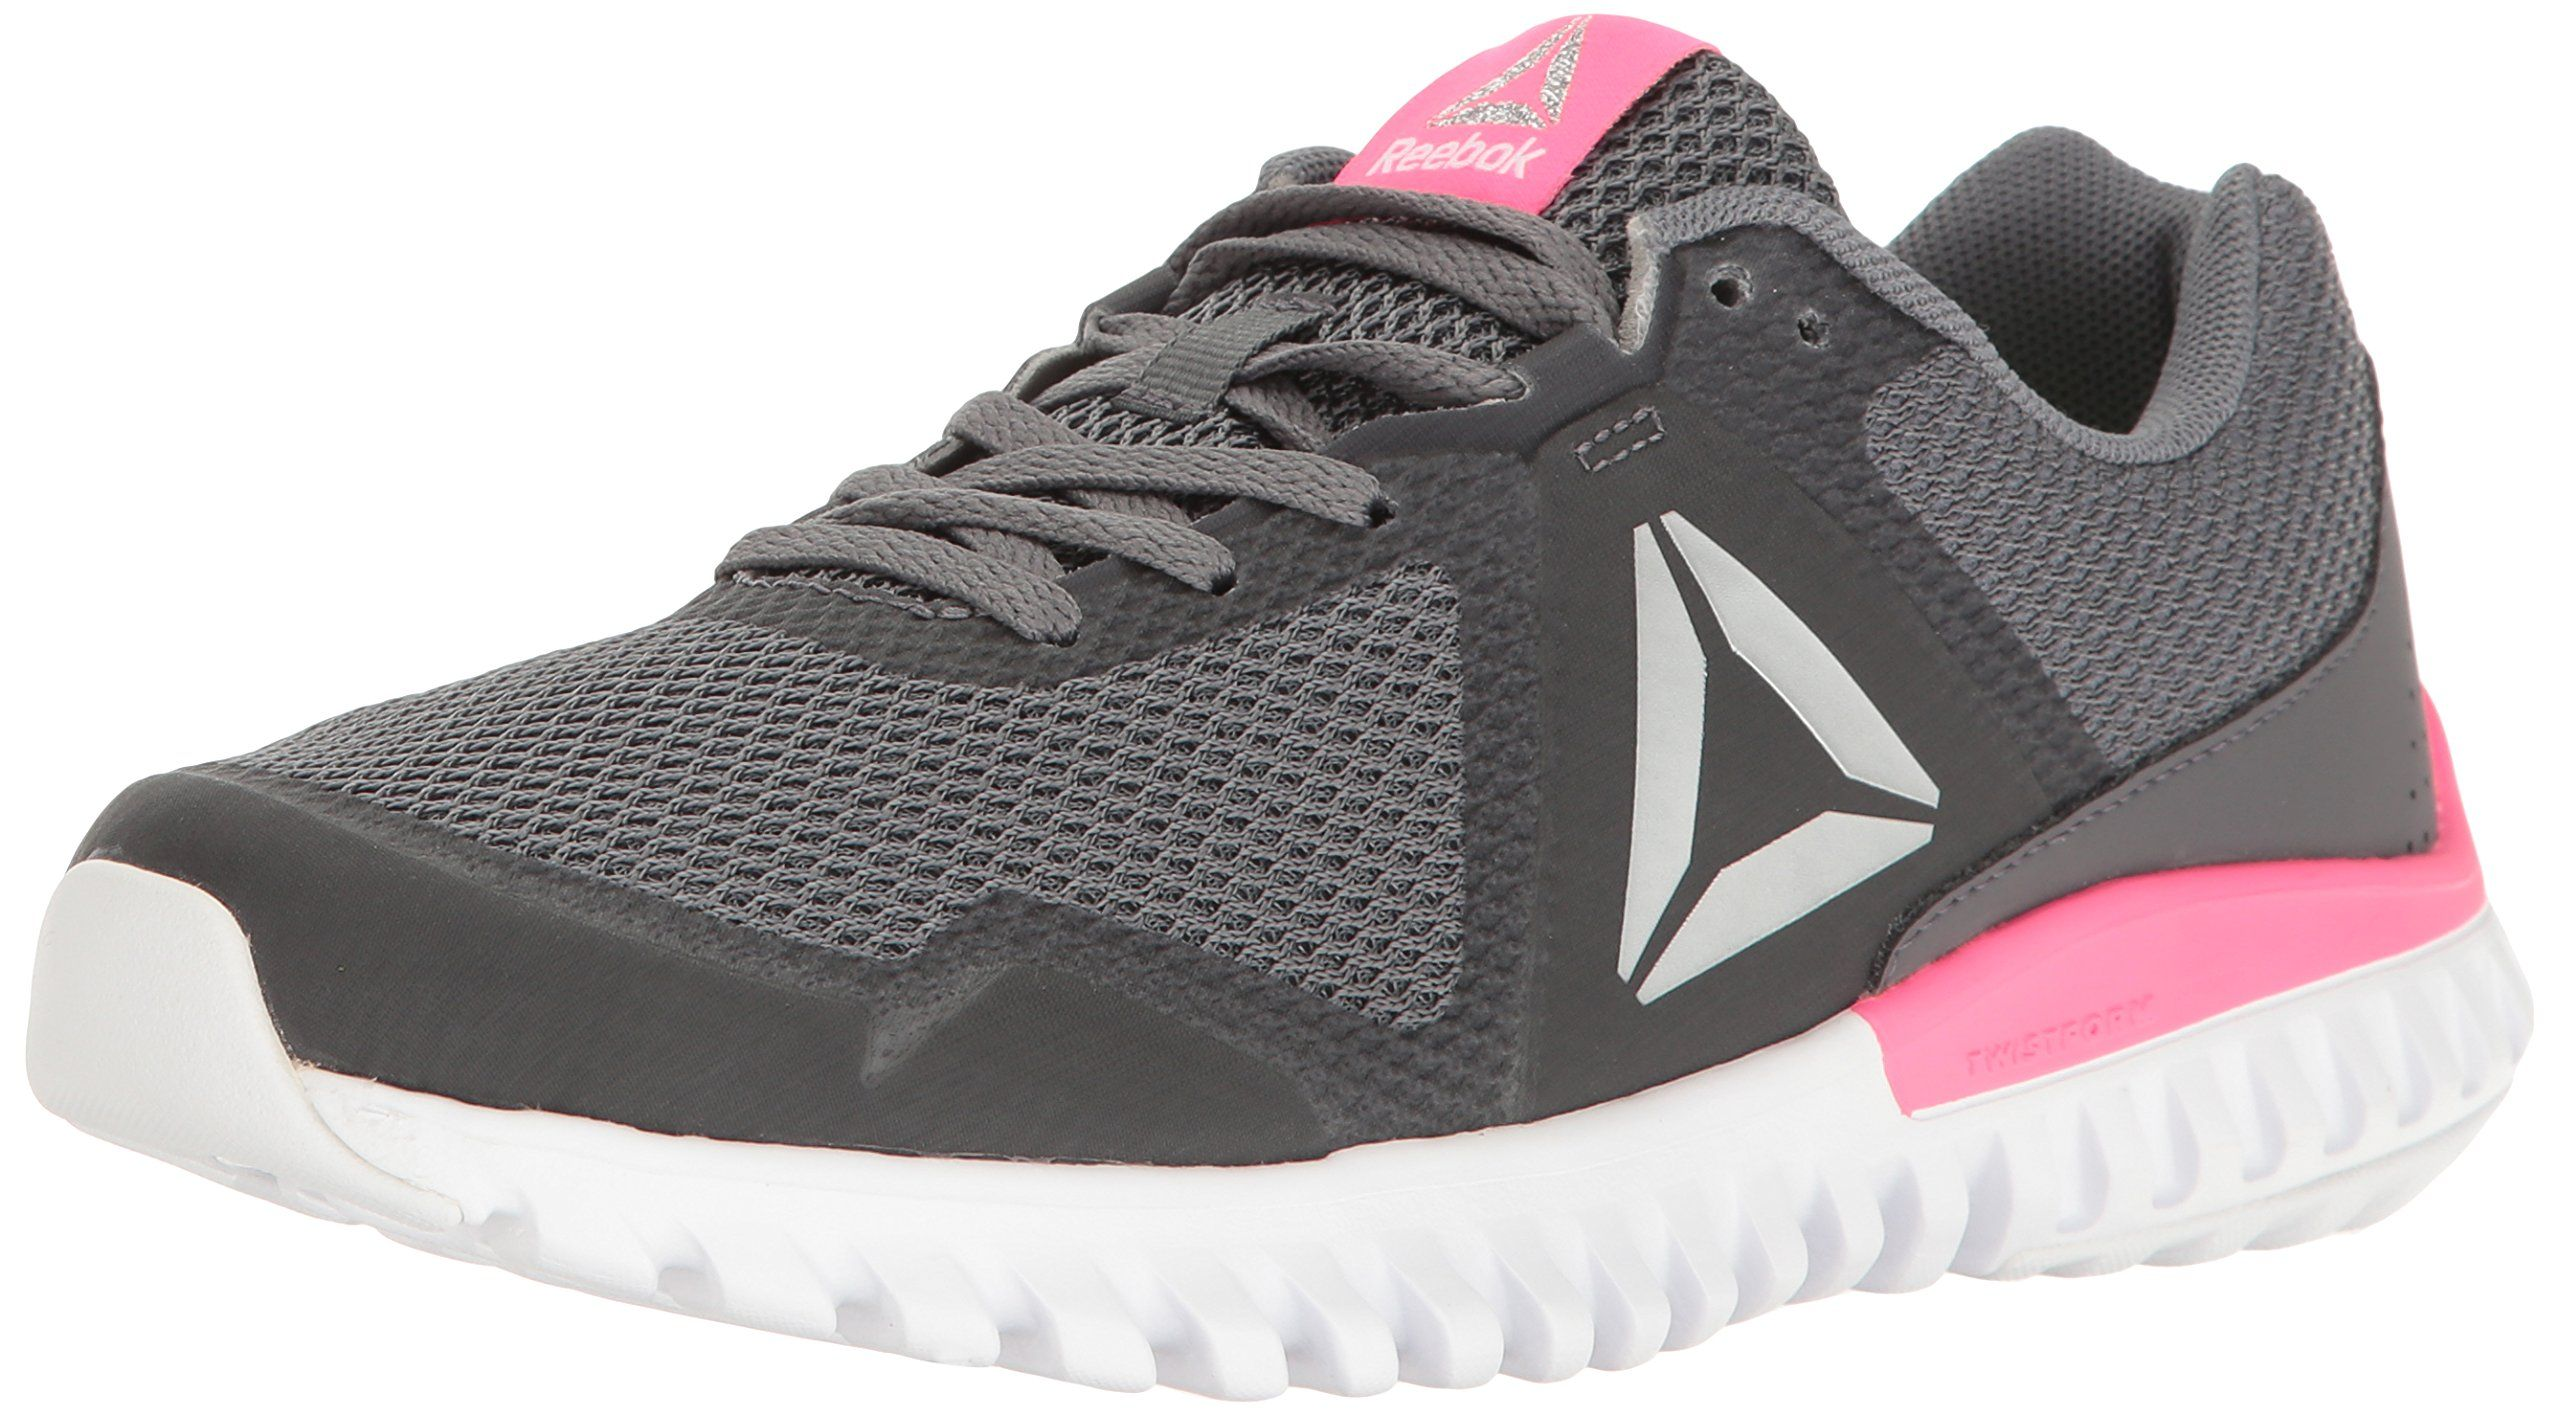 924c5f5a90f4 Reebok Womens Twistform Blaze 3.0 MTM Running Shoe Alloy Ash Grey Poison  Pink White Silver Met 6.5 M US -- Read more at the image link.